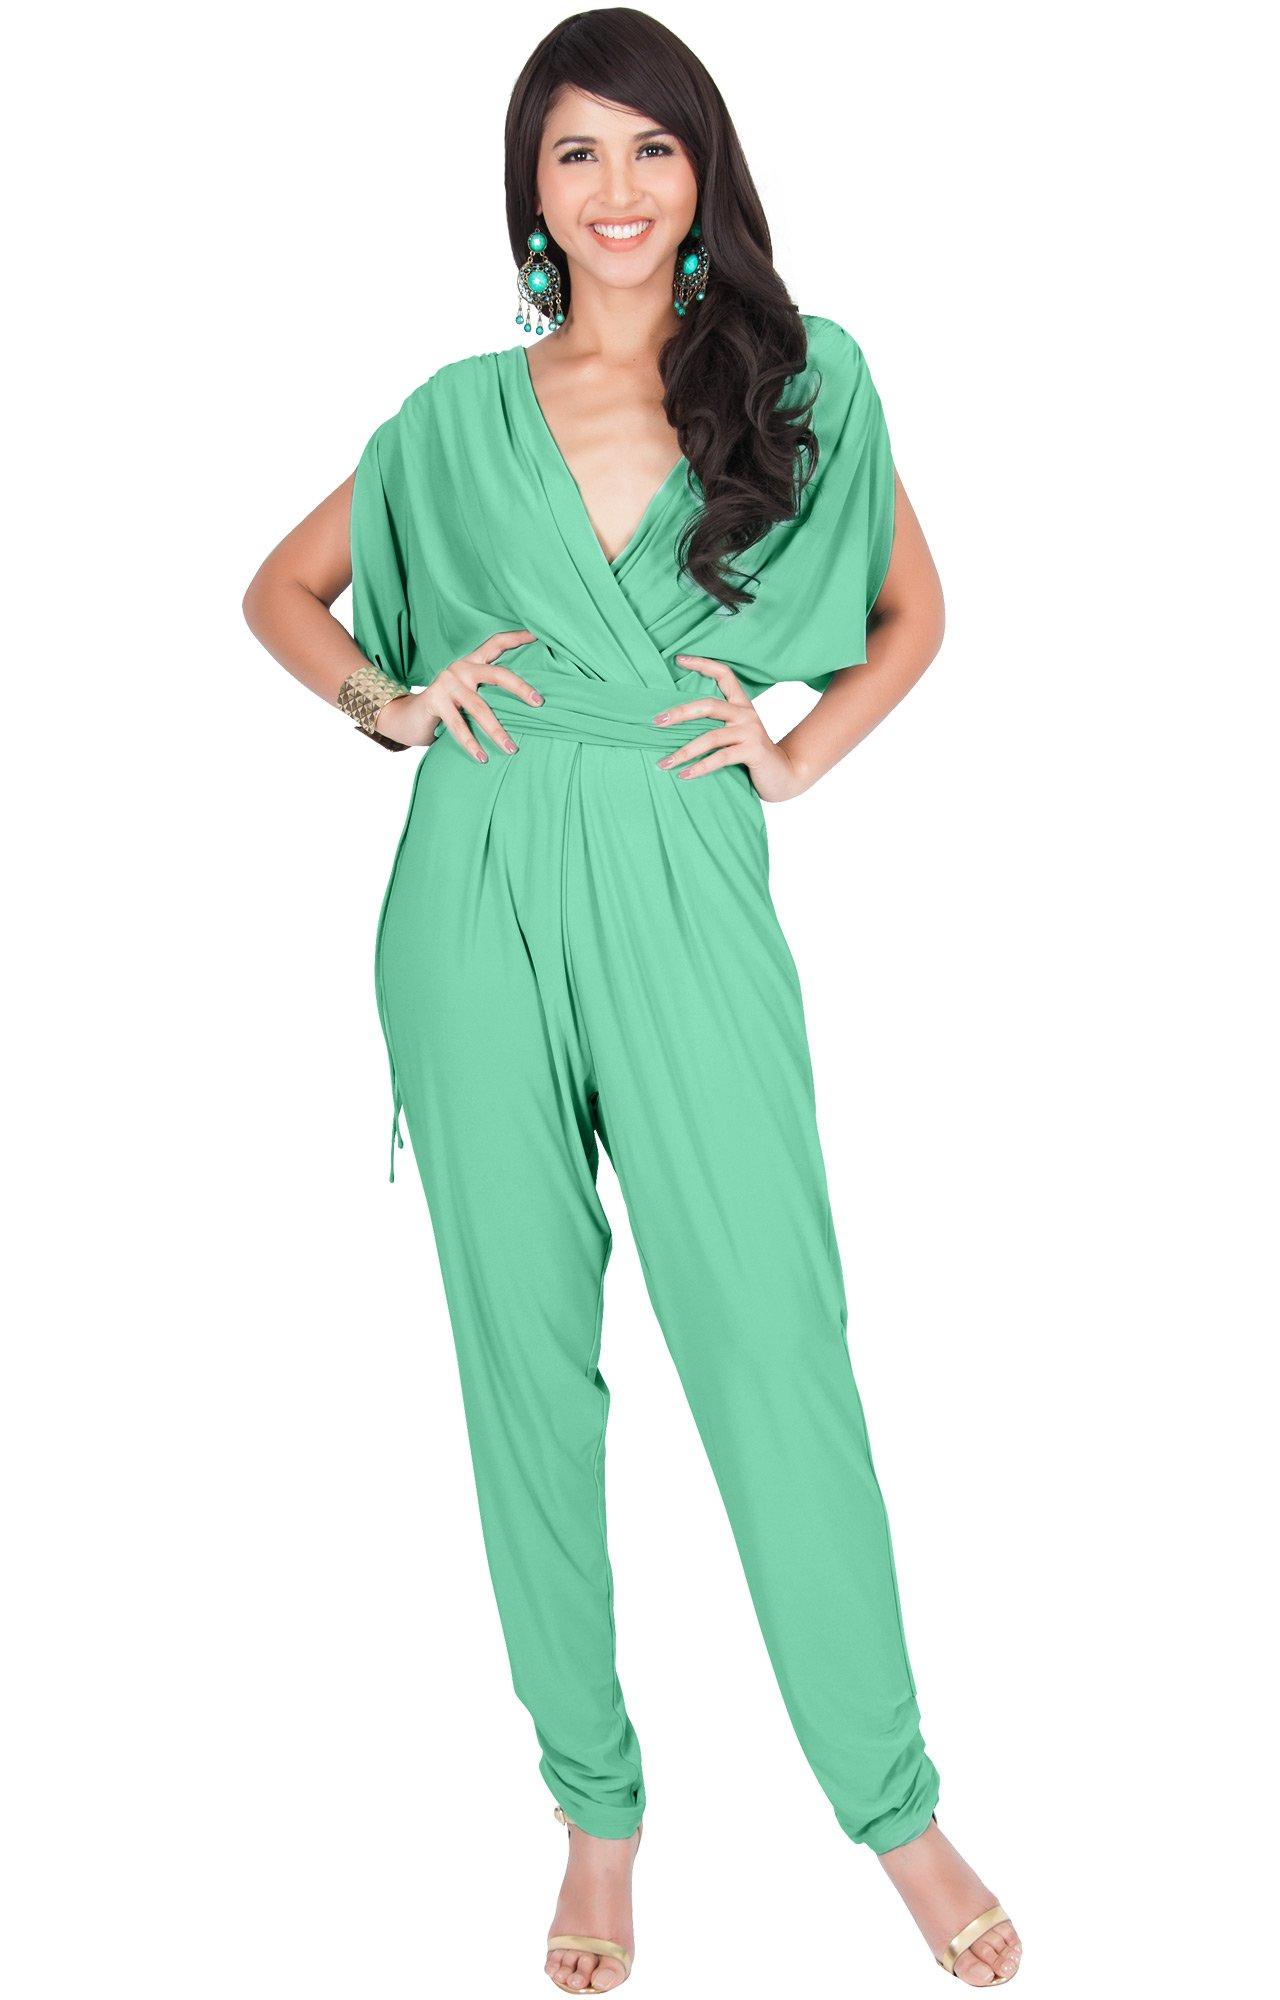 KOH KOH Plus Size Womens Long Pant Pants Suit Suits Sexy V-Neck Short Batwing Sleeve Sleeves Cocktail Party Casual Pantsuit Playsuit Jumpsuit Jumpsuits Romper Rompers, Moss/Mint Green 2X 18-20